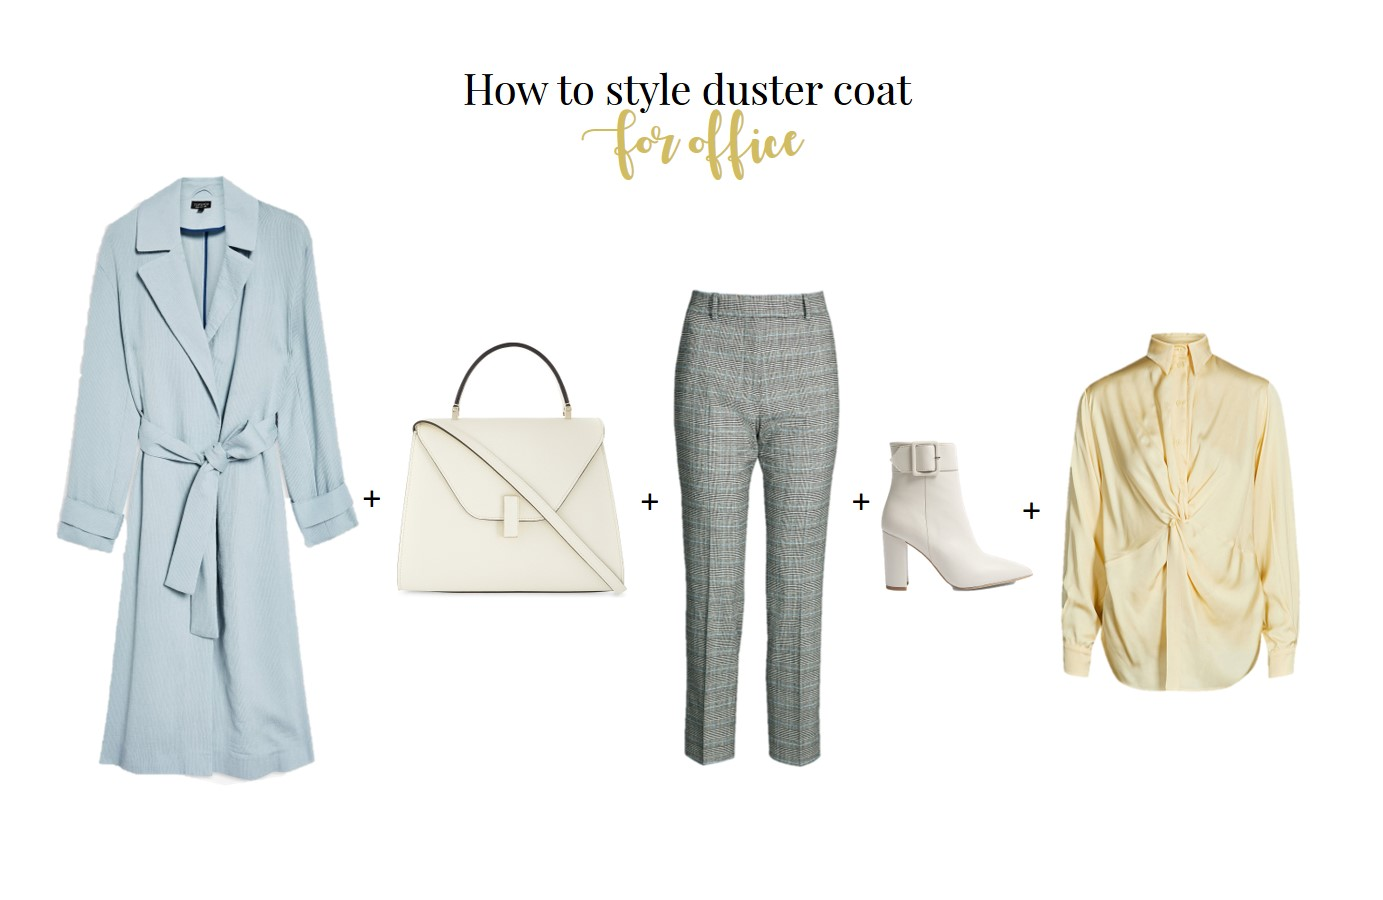 How to wear duster coat for work outfit inspiration for work